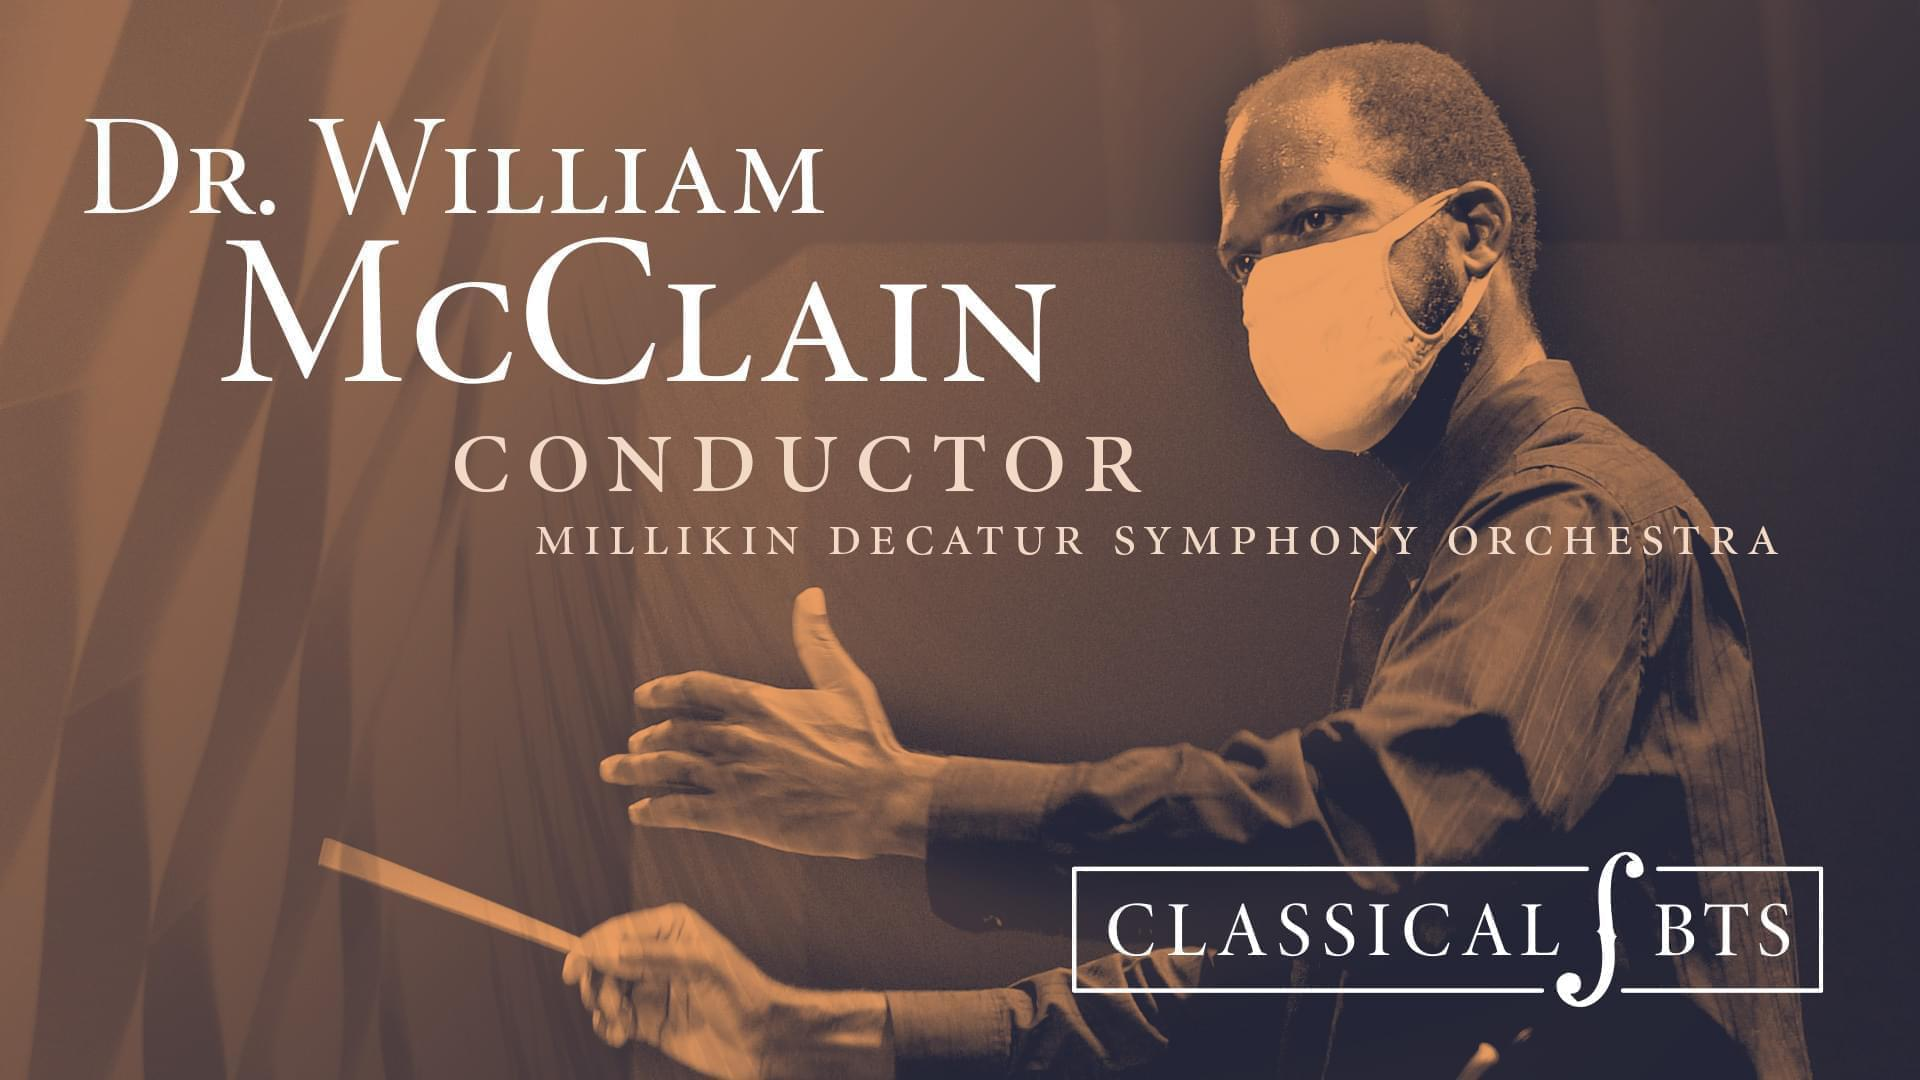 Image of Dr. William McClain conducting with text over saying Dr. William McClain conductor Millikin Decatur Symphony Orchestra